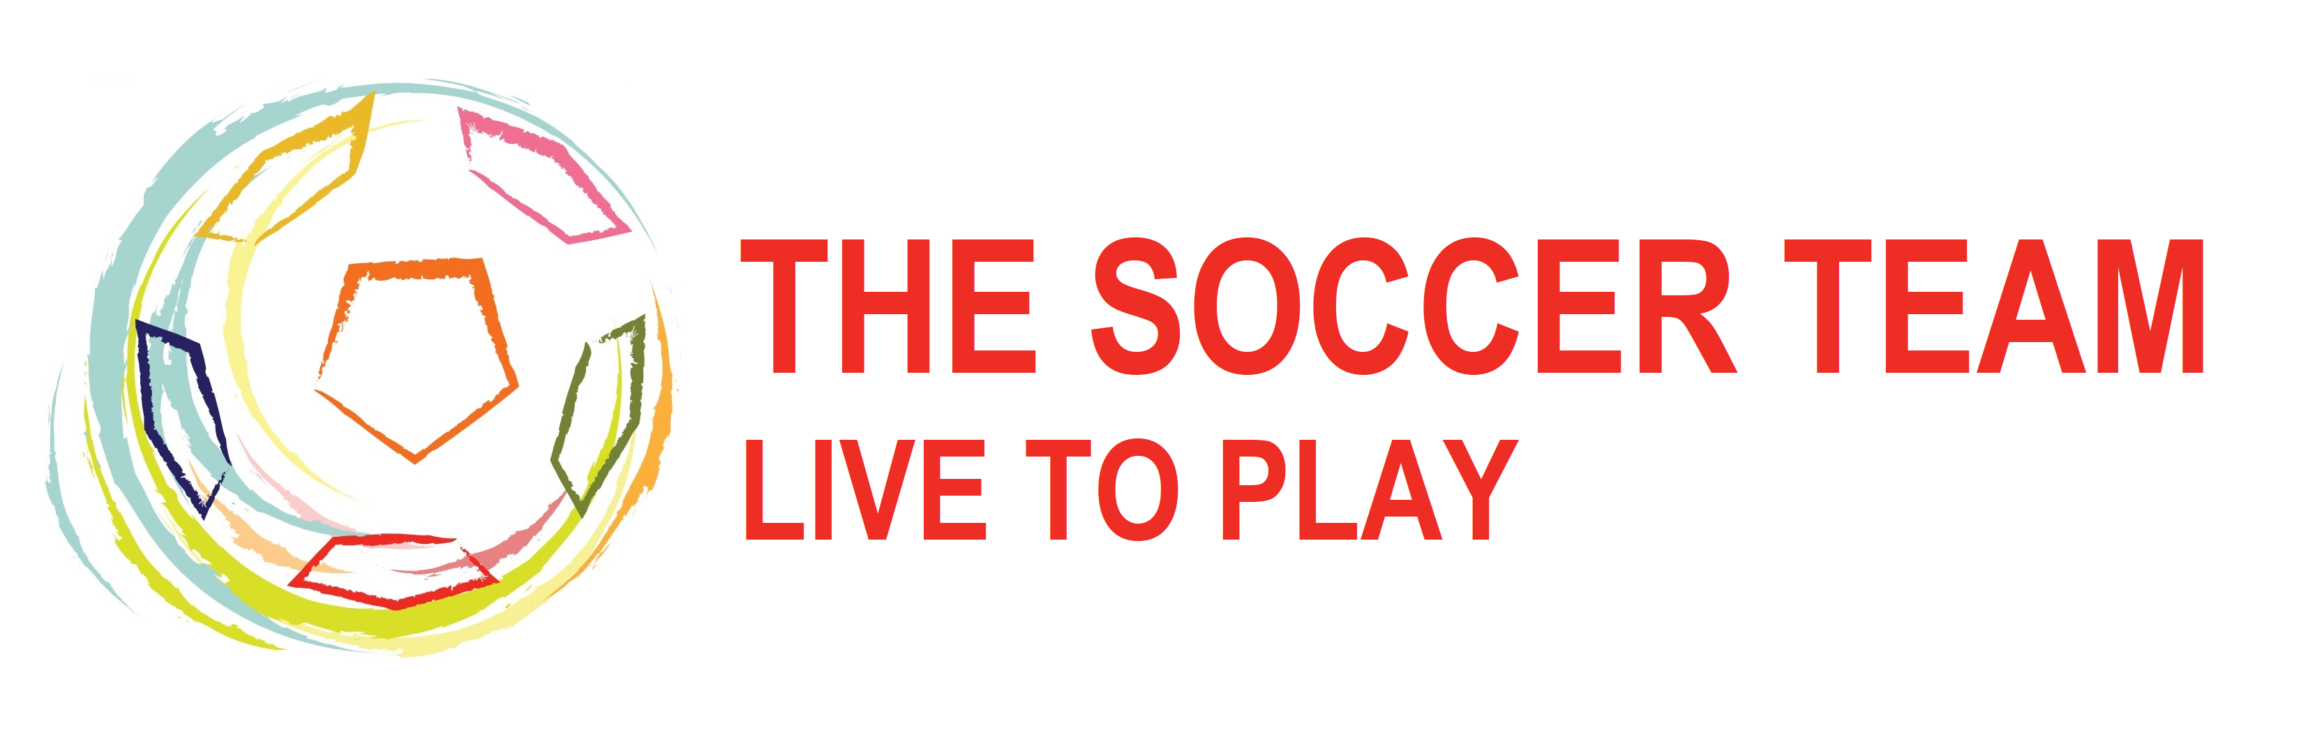 The Soccer Team, Inc